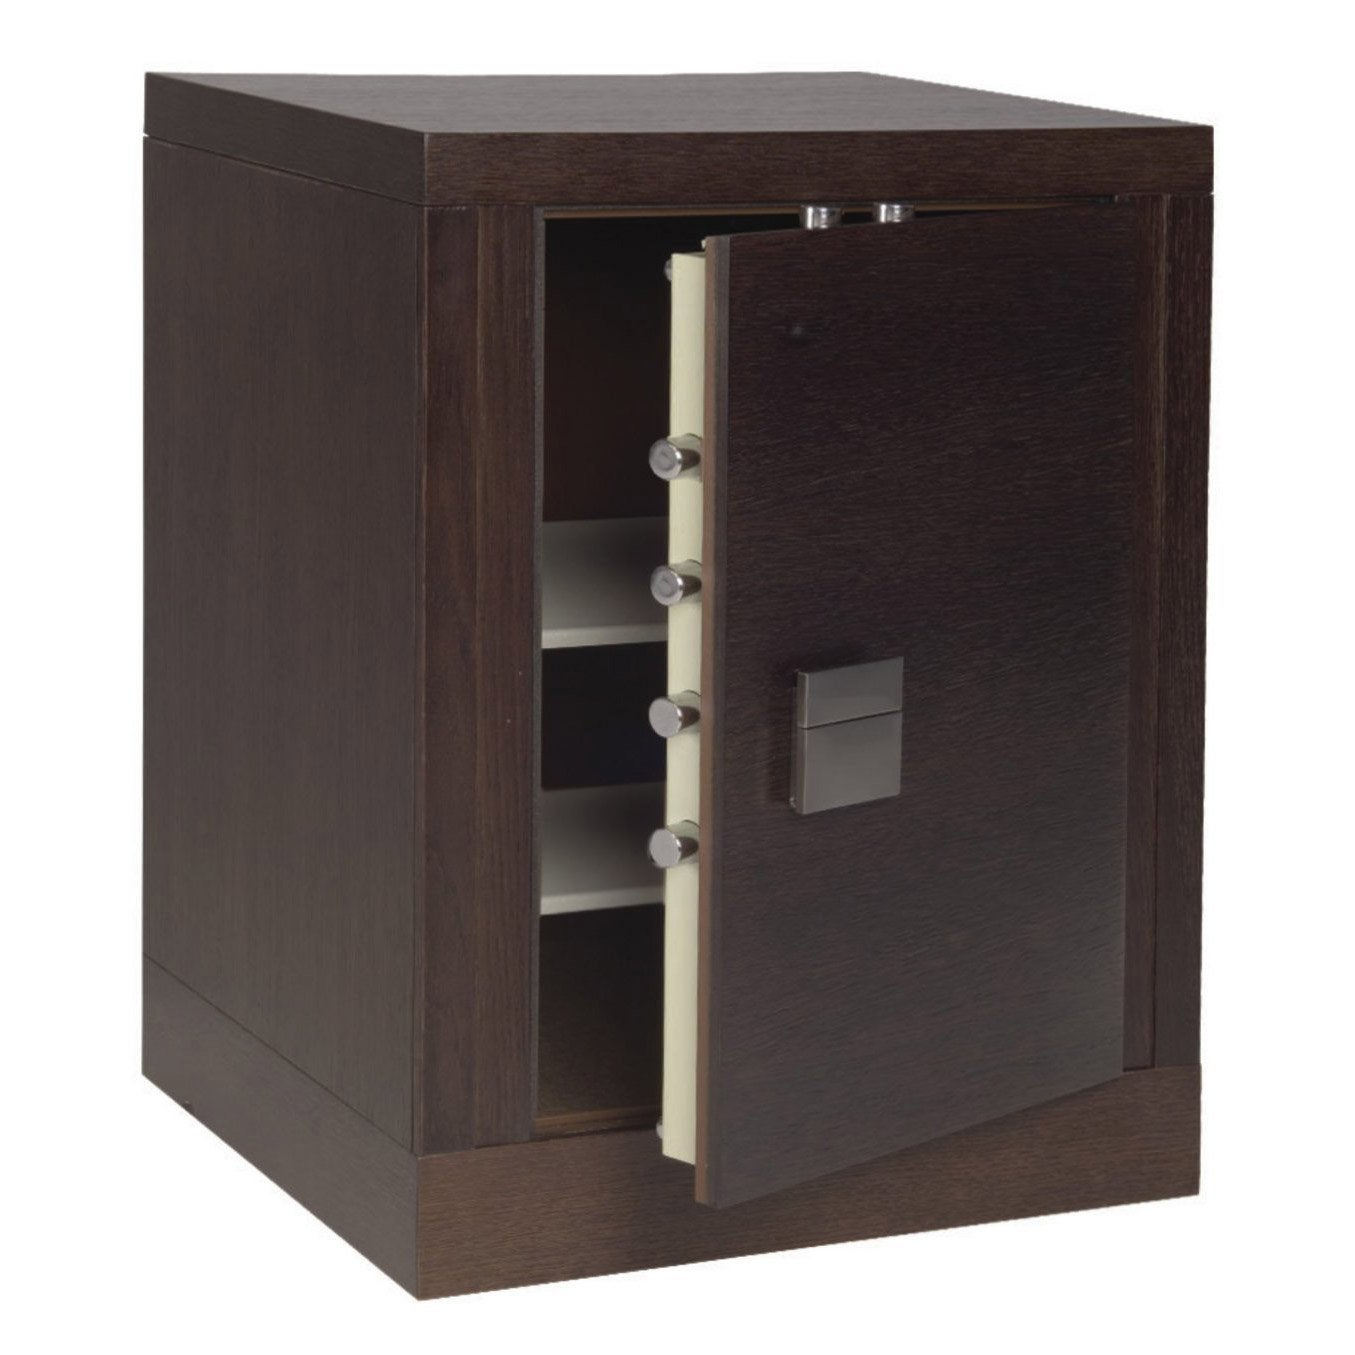 coffre fort haute s curit cl stark moderne 309mcw 236l leroy merlin. Black Bedroom Furniture Sets. Home Design Ideas